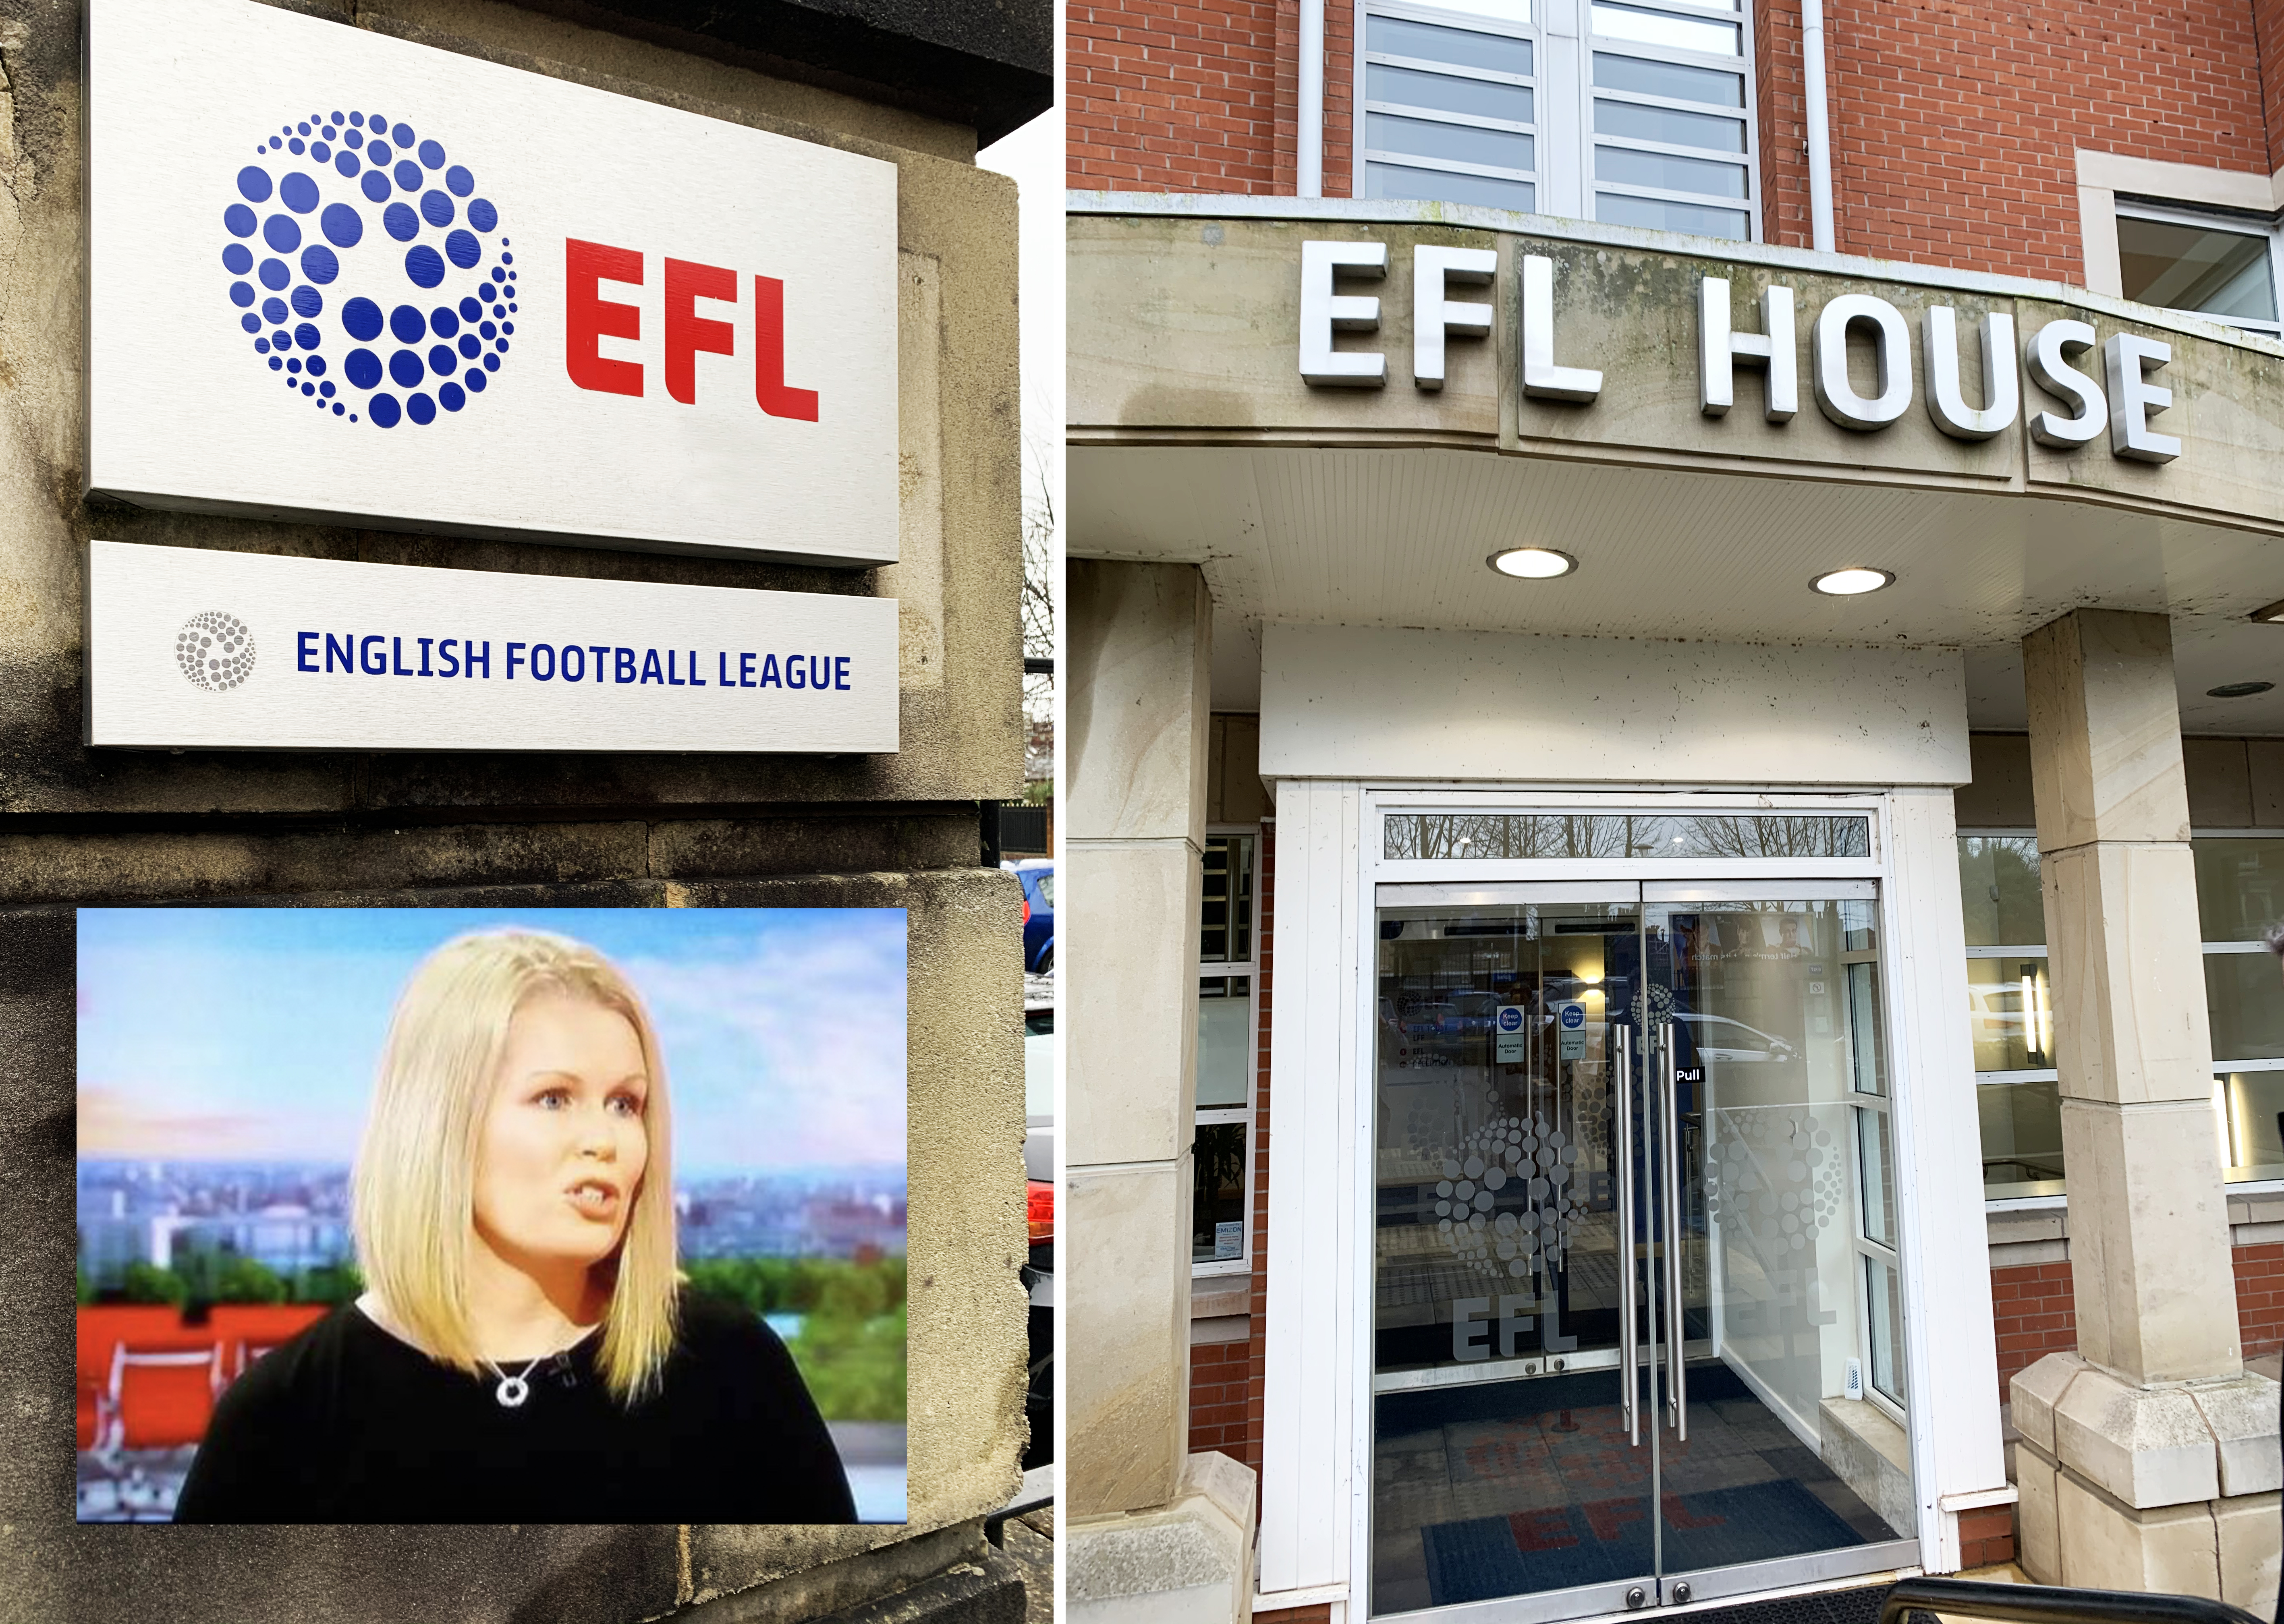 English Football League signs up to Notify AI